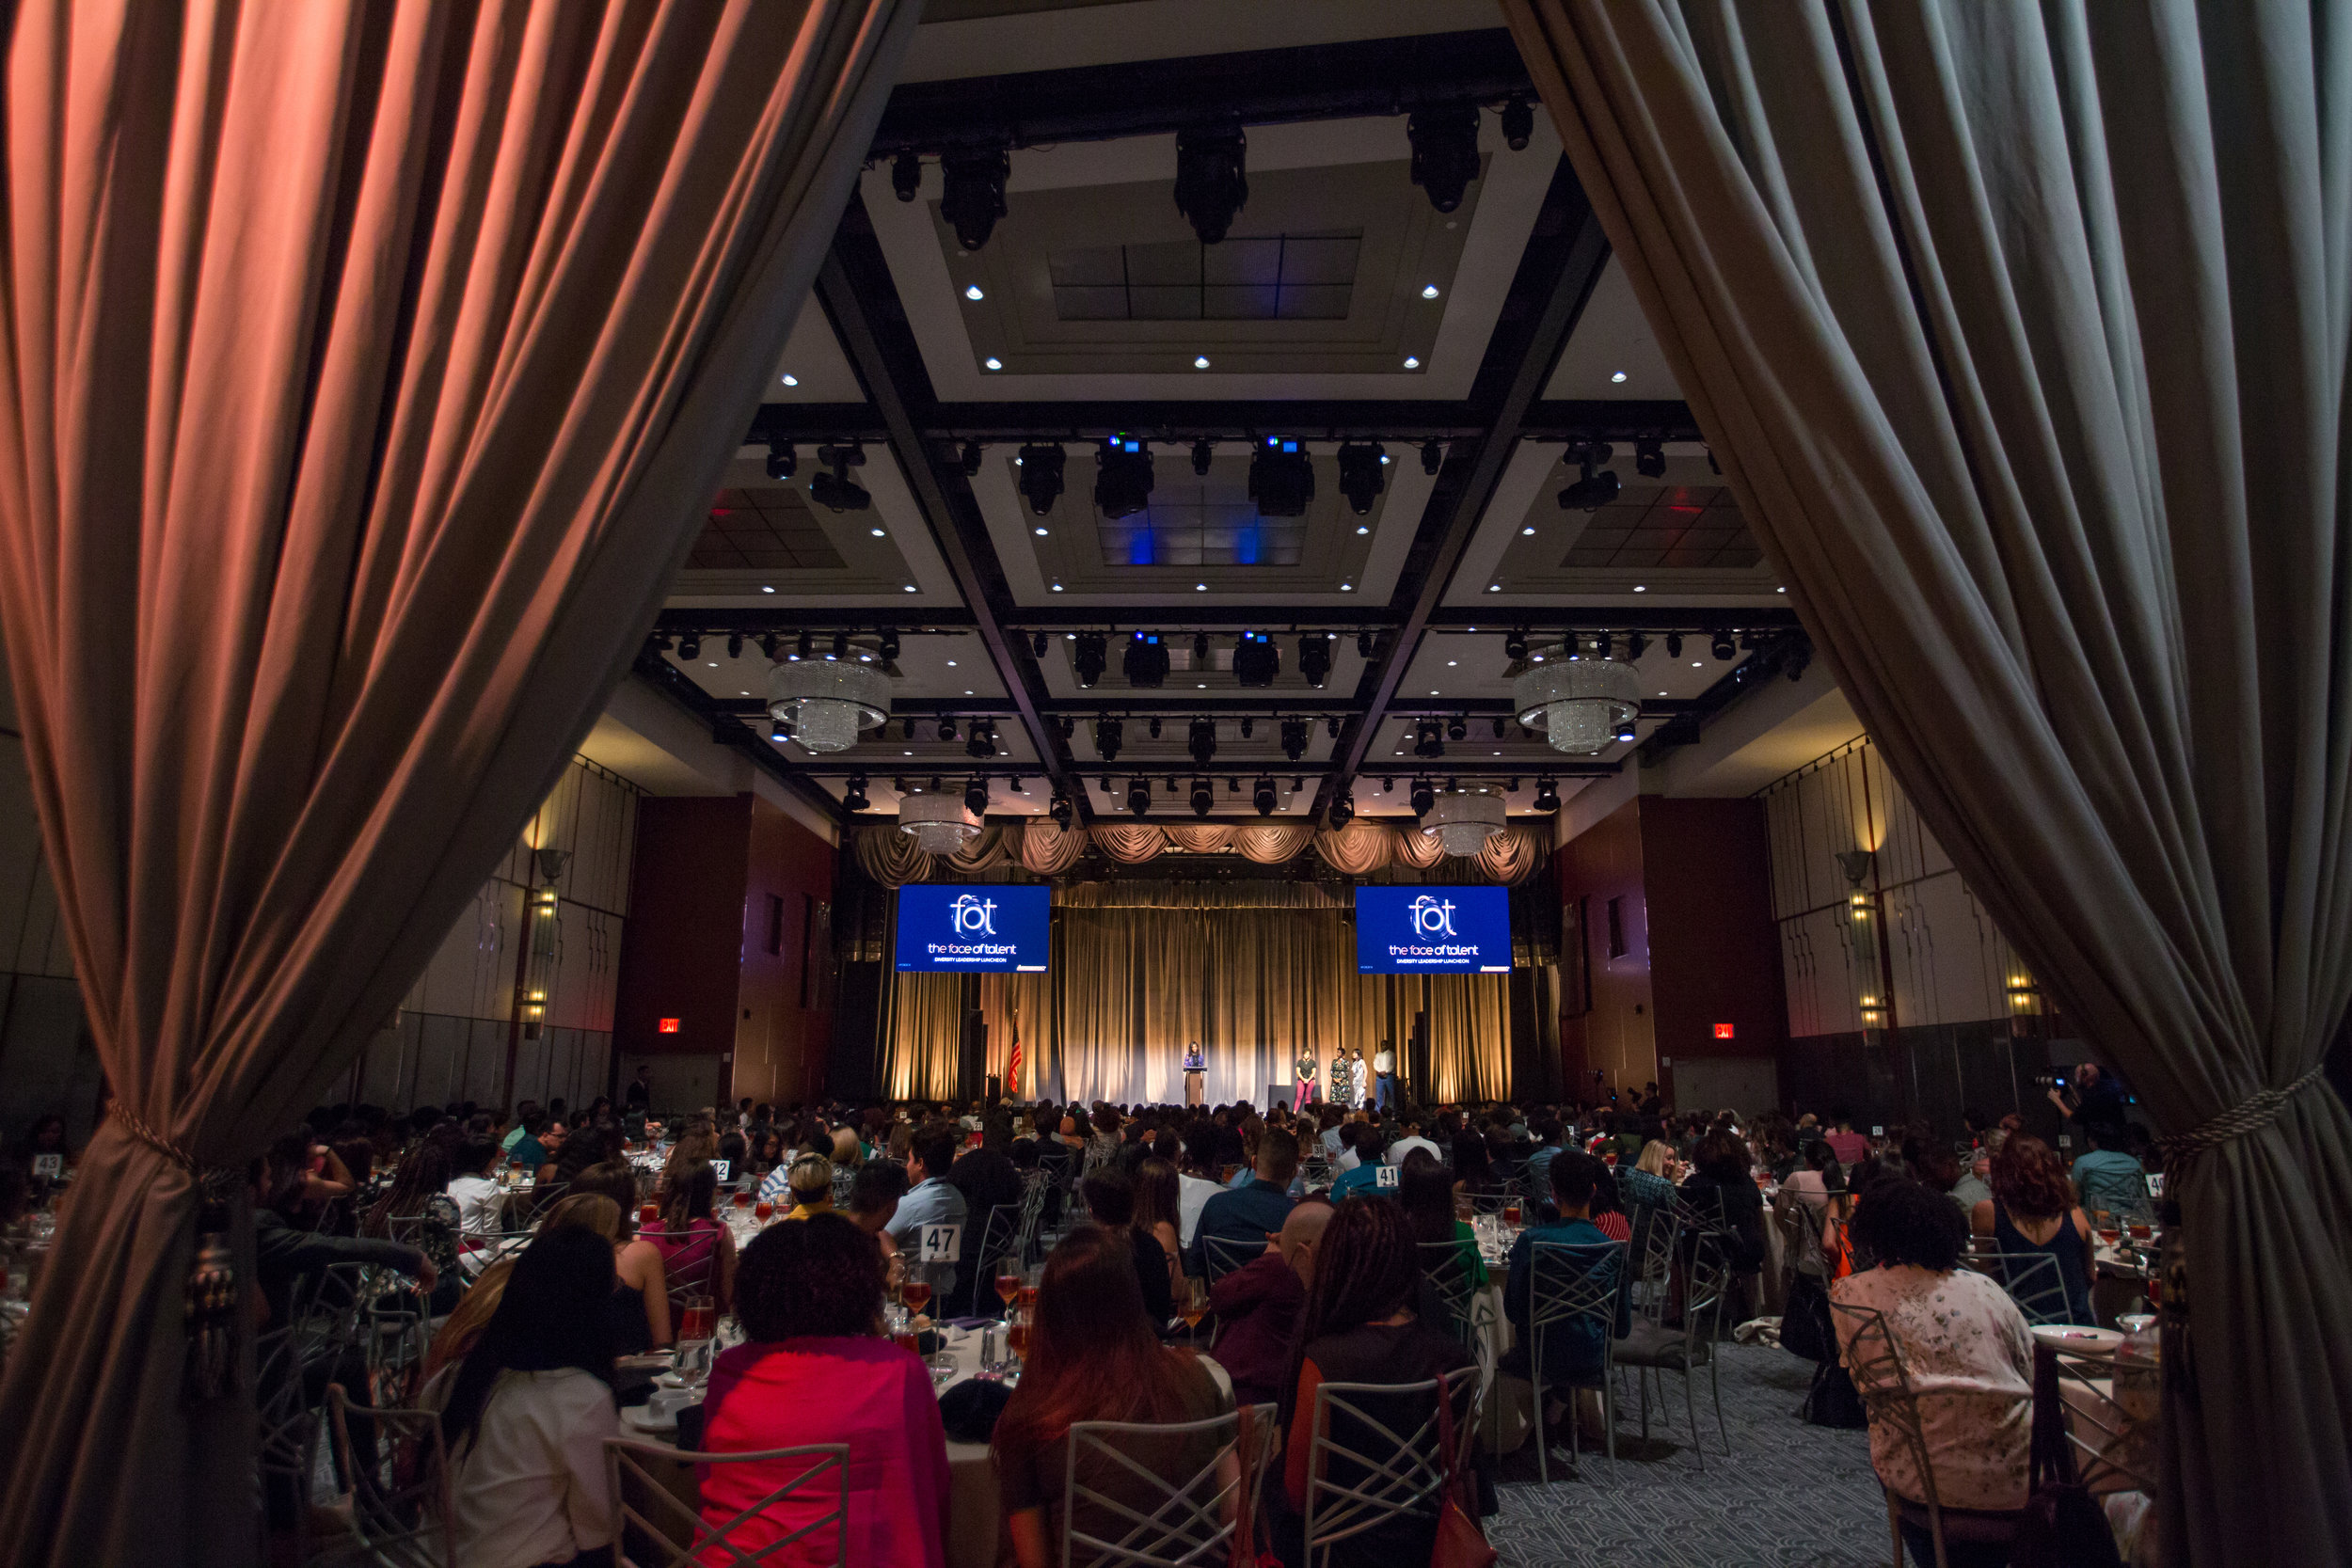 4As_MAIP_FOT_Luncheon_2018_Margarita_Corporan-223.jpg